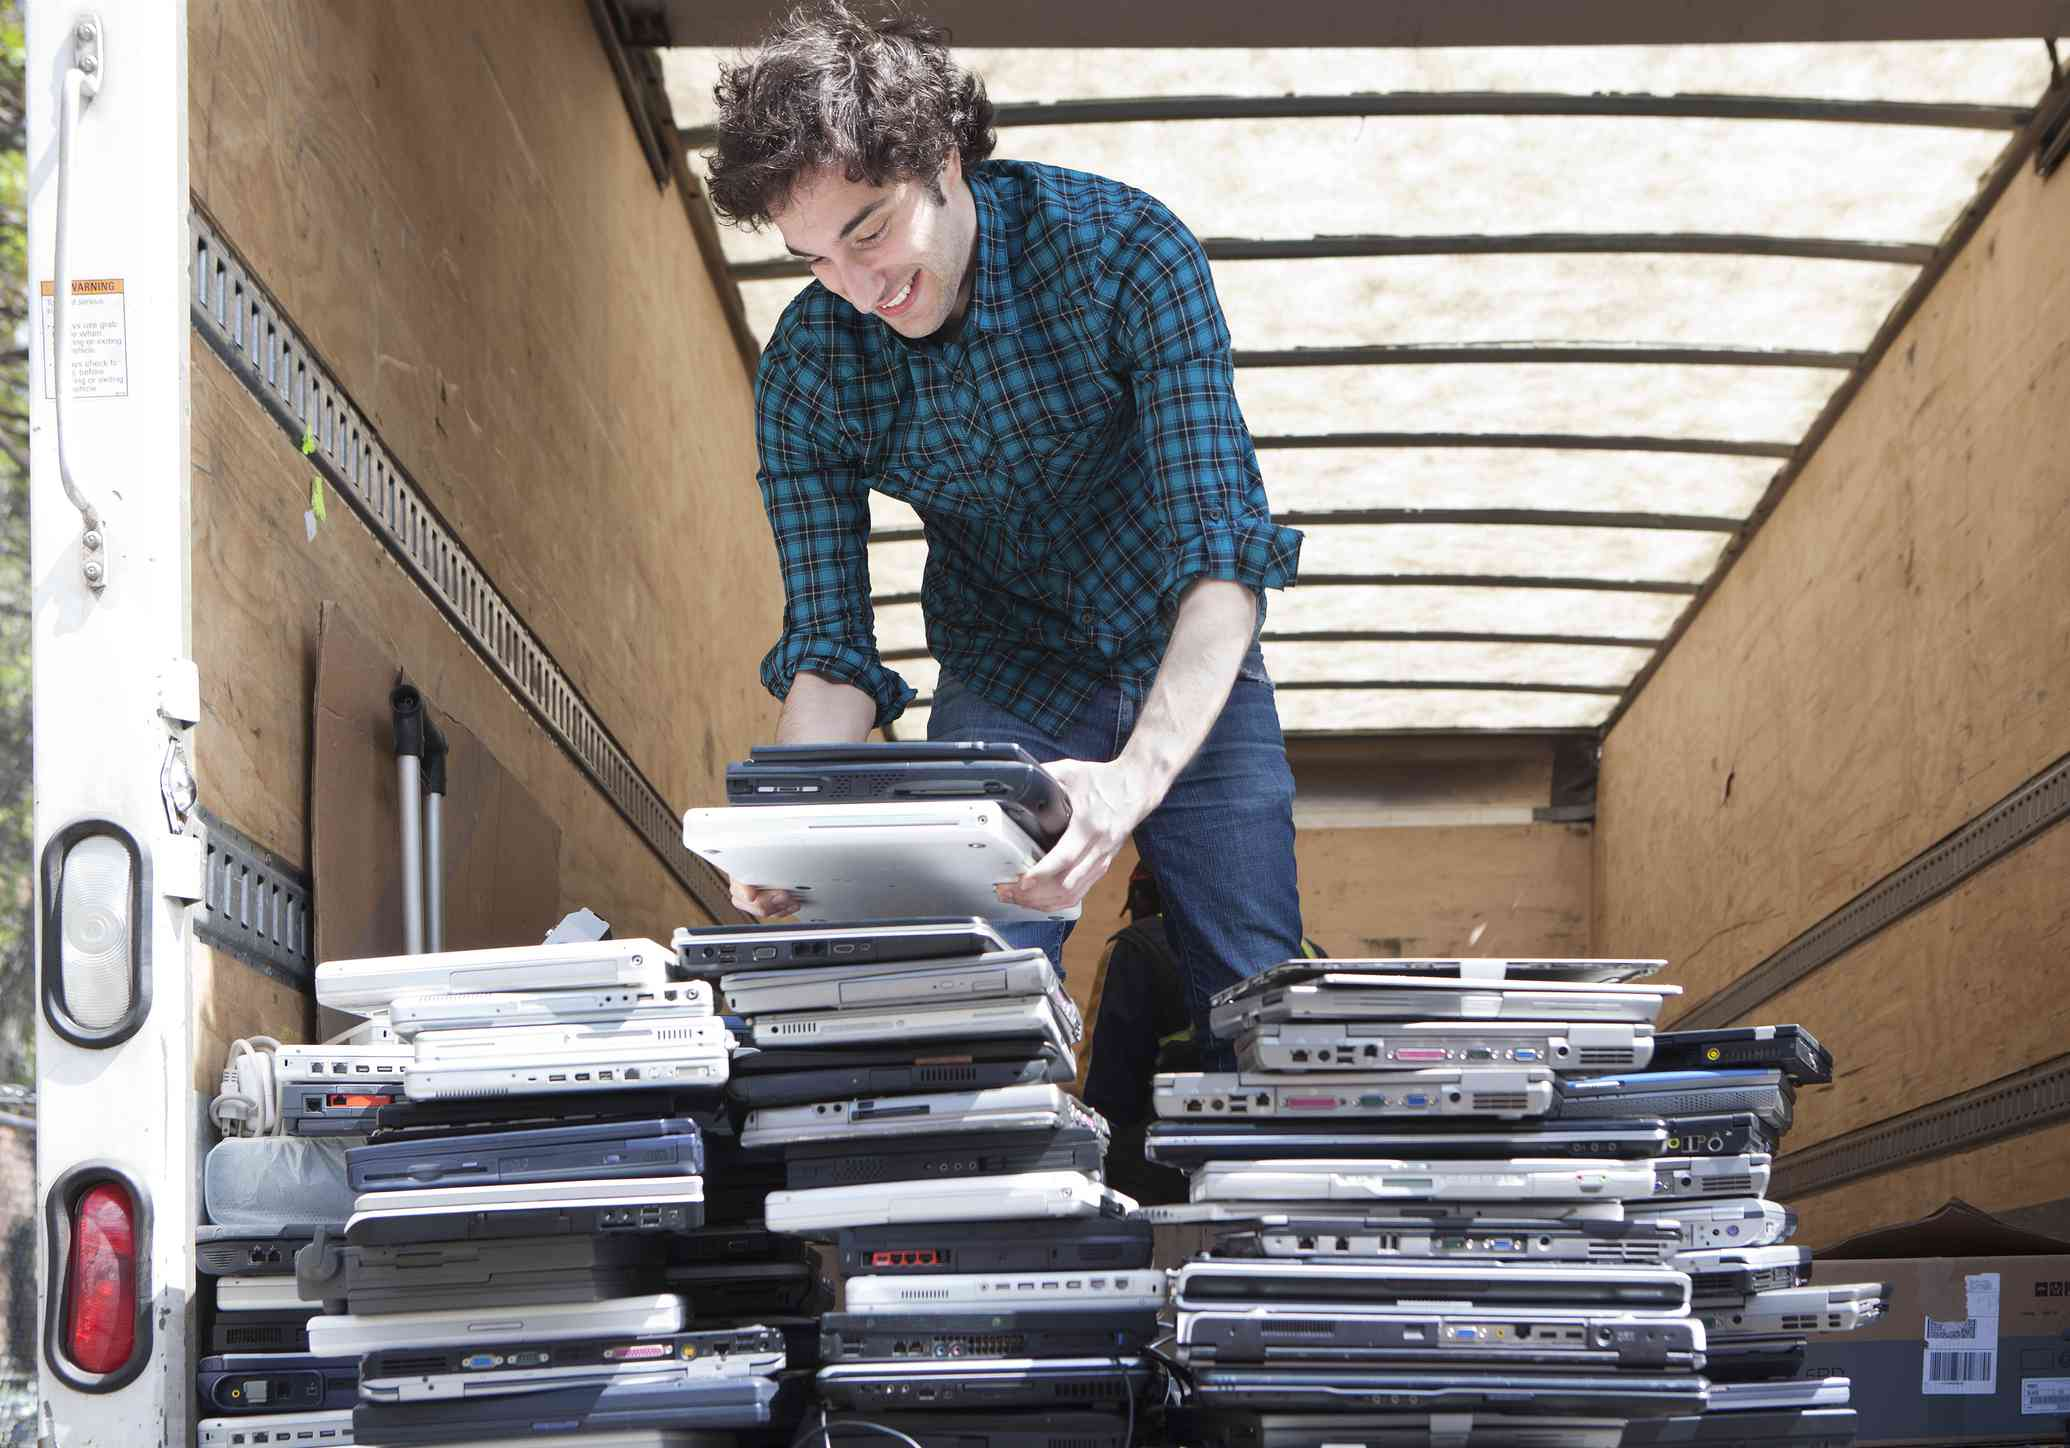 Someone moving stacks of recycled laptops.